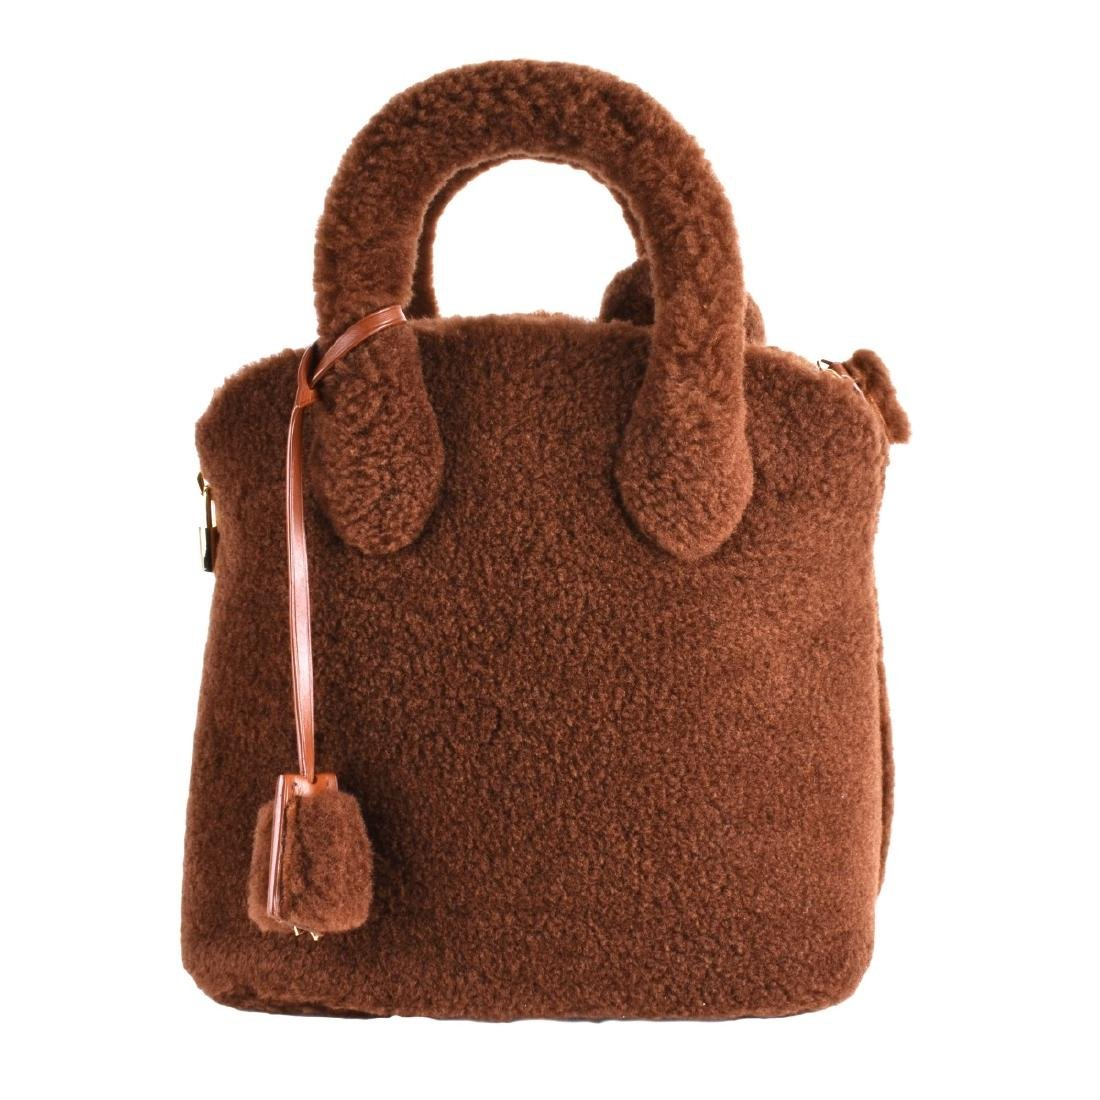 Louis Vuitton Brown Lockit Shearling Pulsion